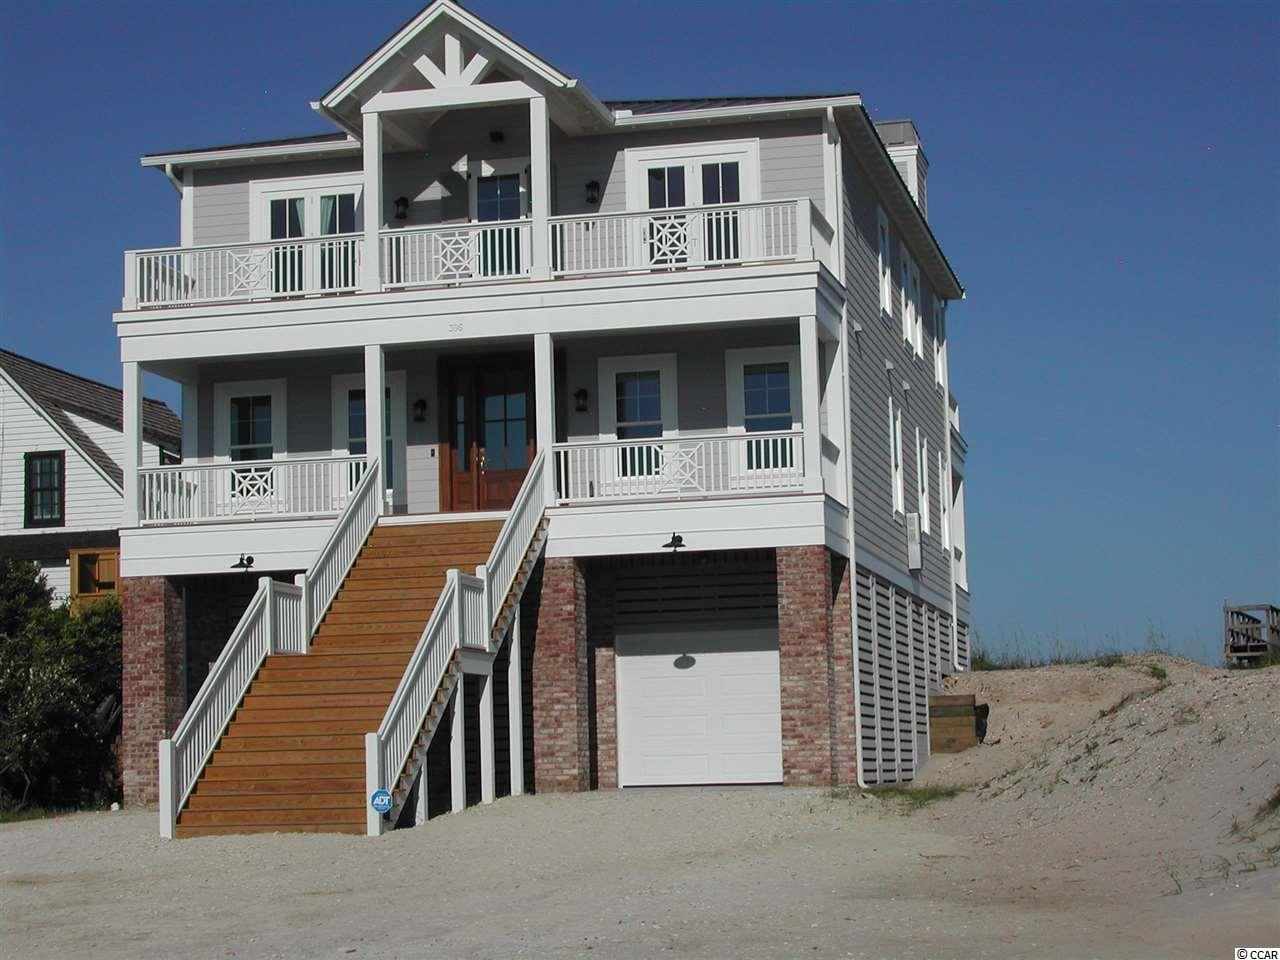 396 Myrtle Ave., Pawleys Island, South Carolina